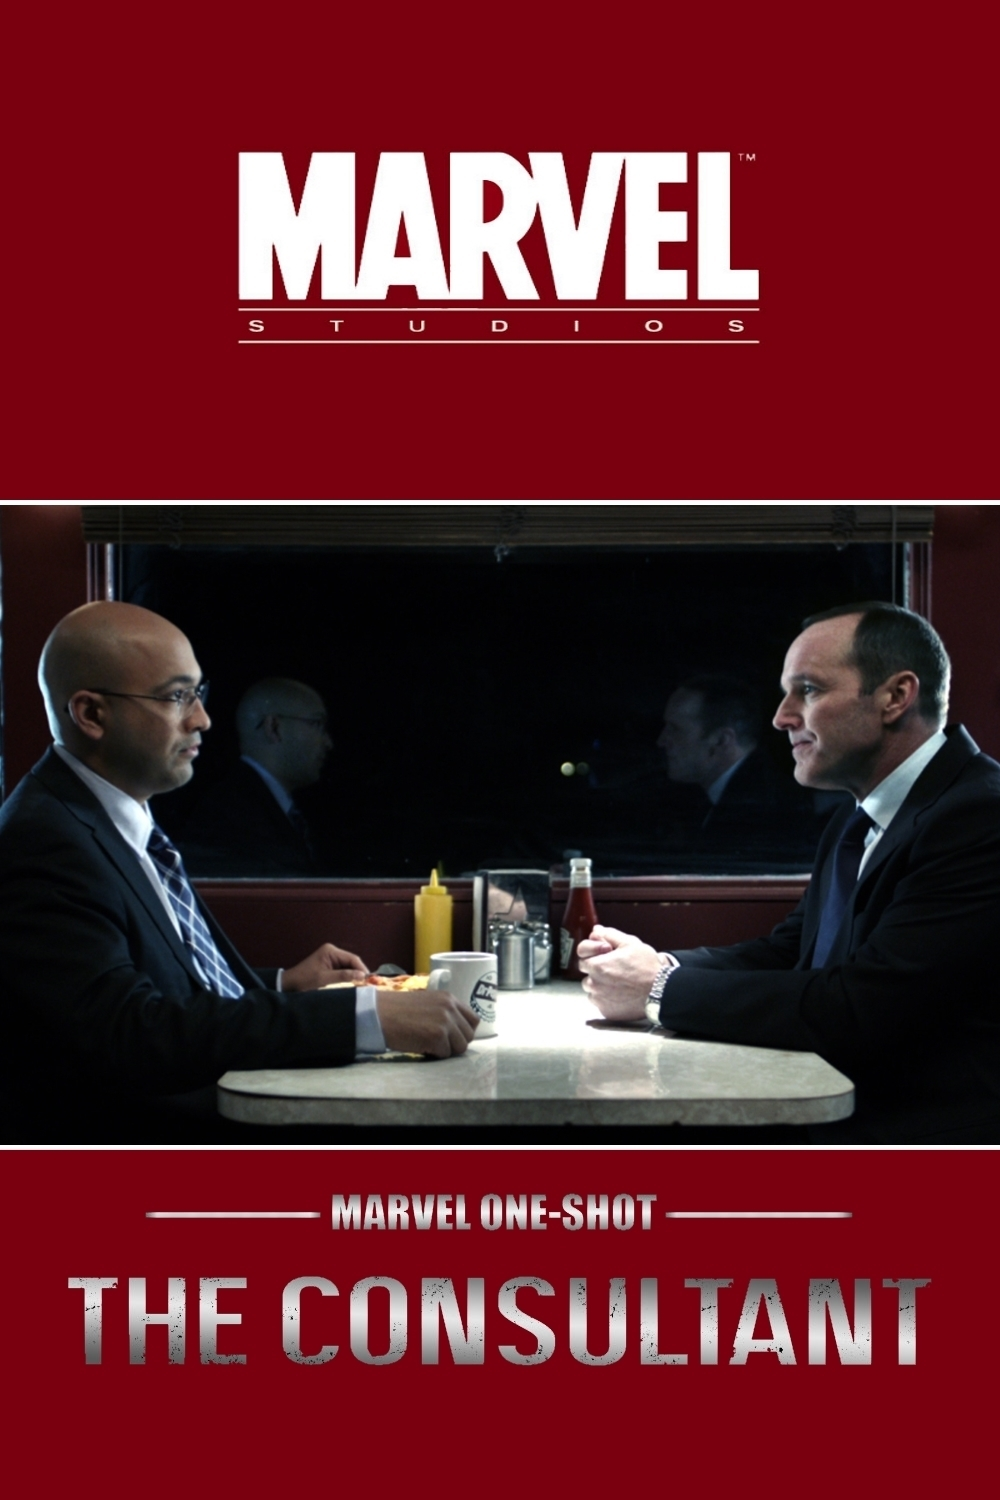 the Marvel One-Shot: Item 47 full movie in hindi free download hd